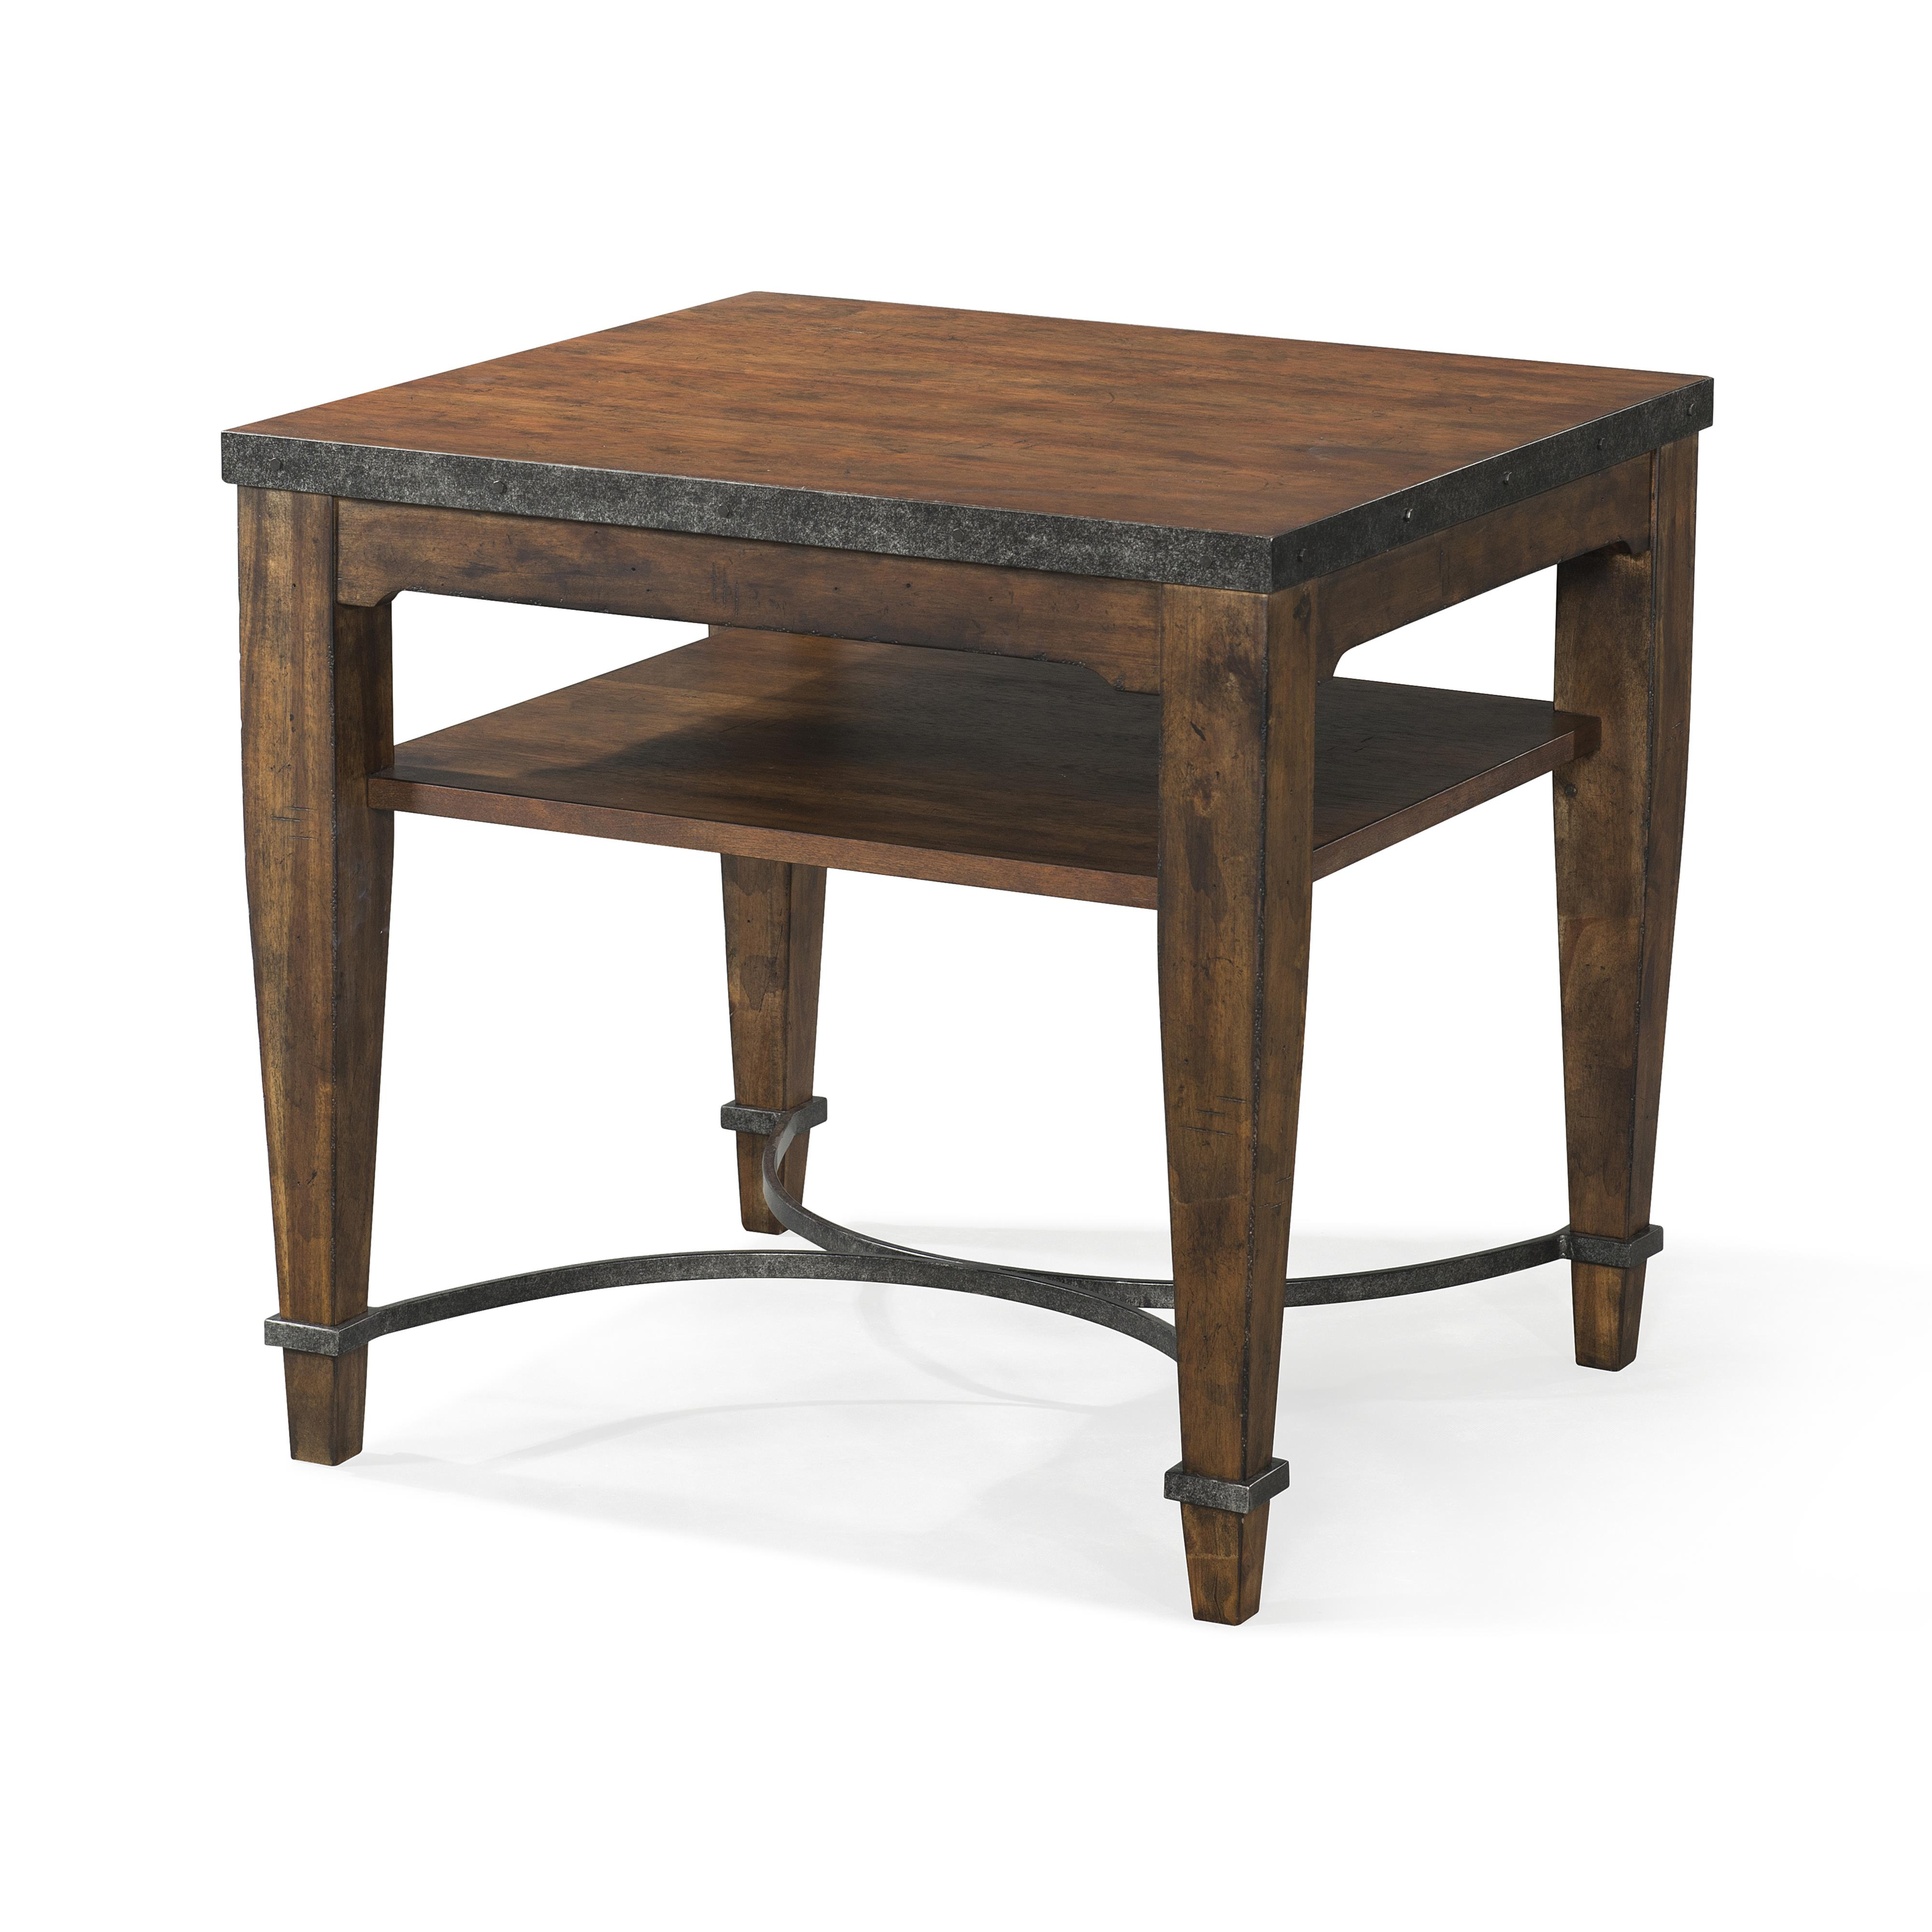 Trisha Yearwood Home Ginkgo Lamp Table by Trisha Yearwood Home Collection by Klaussner at Darvin Furniture